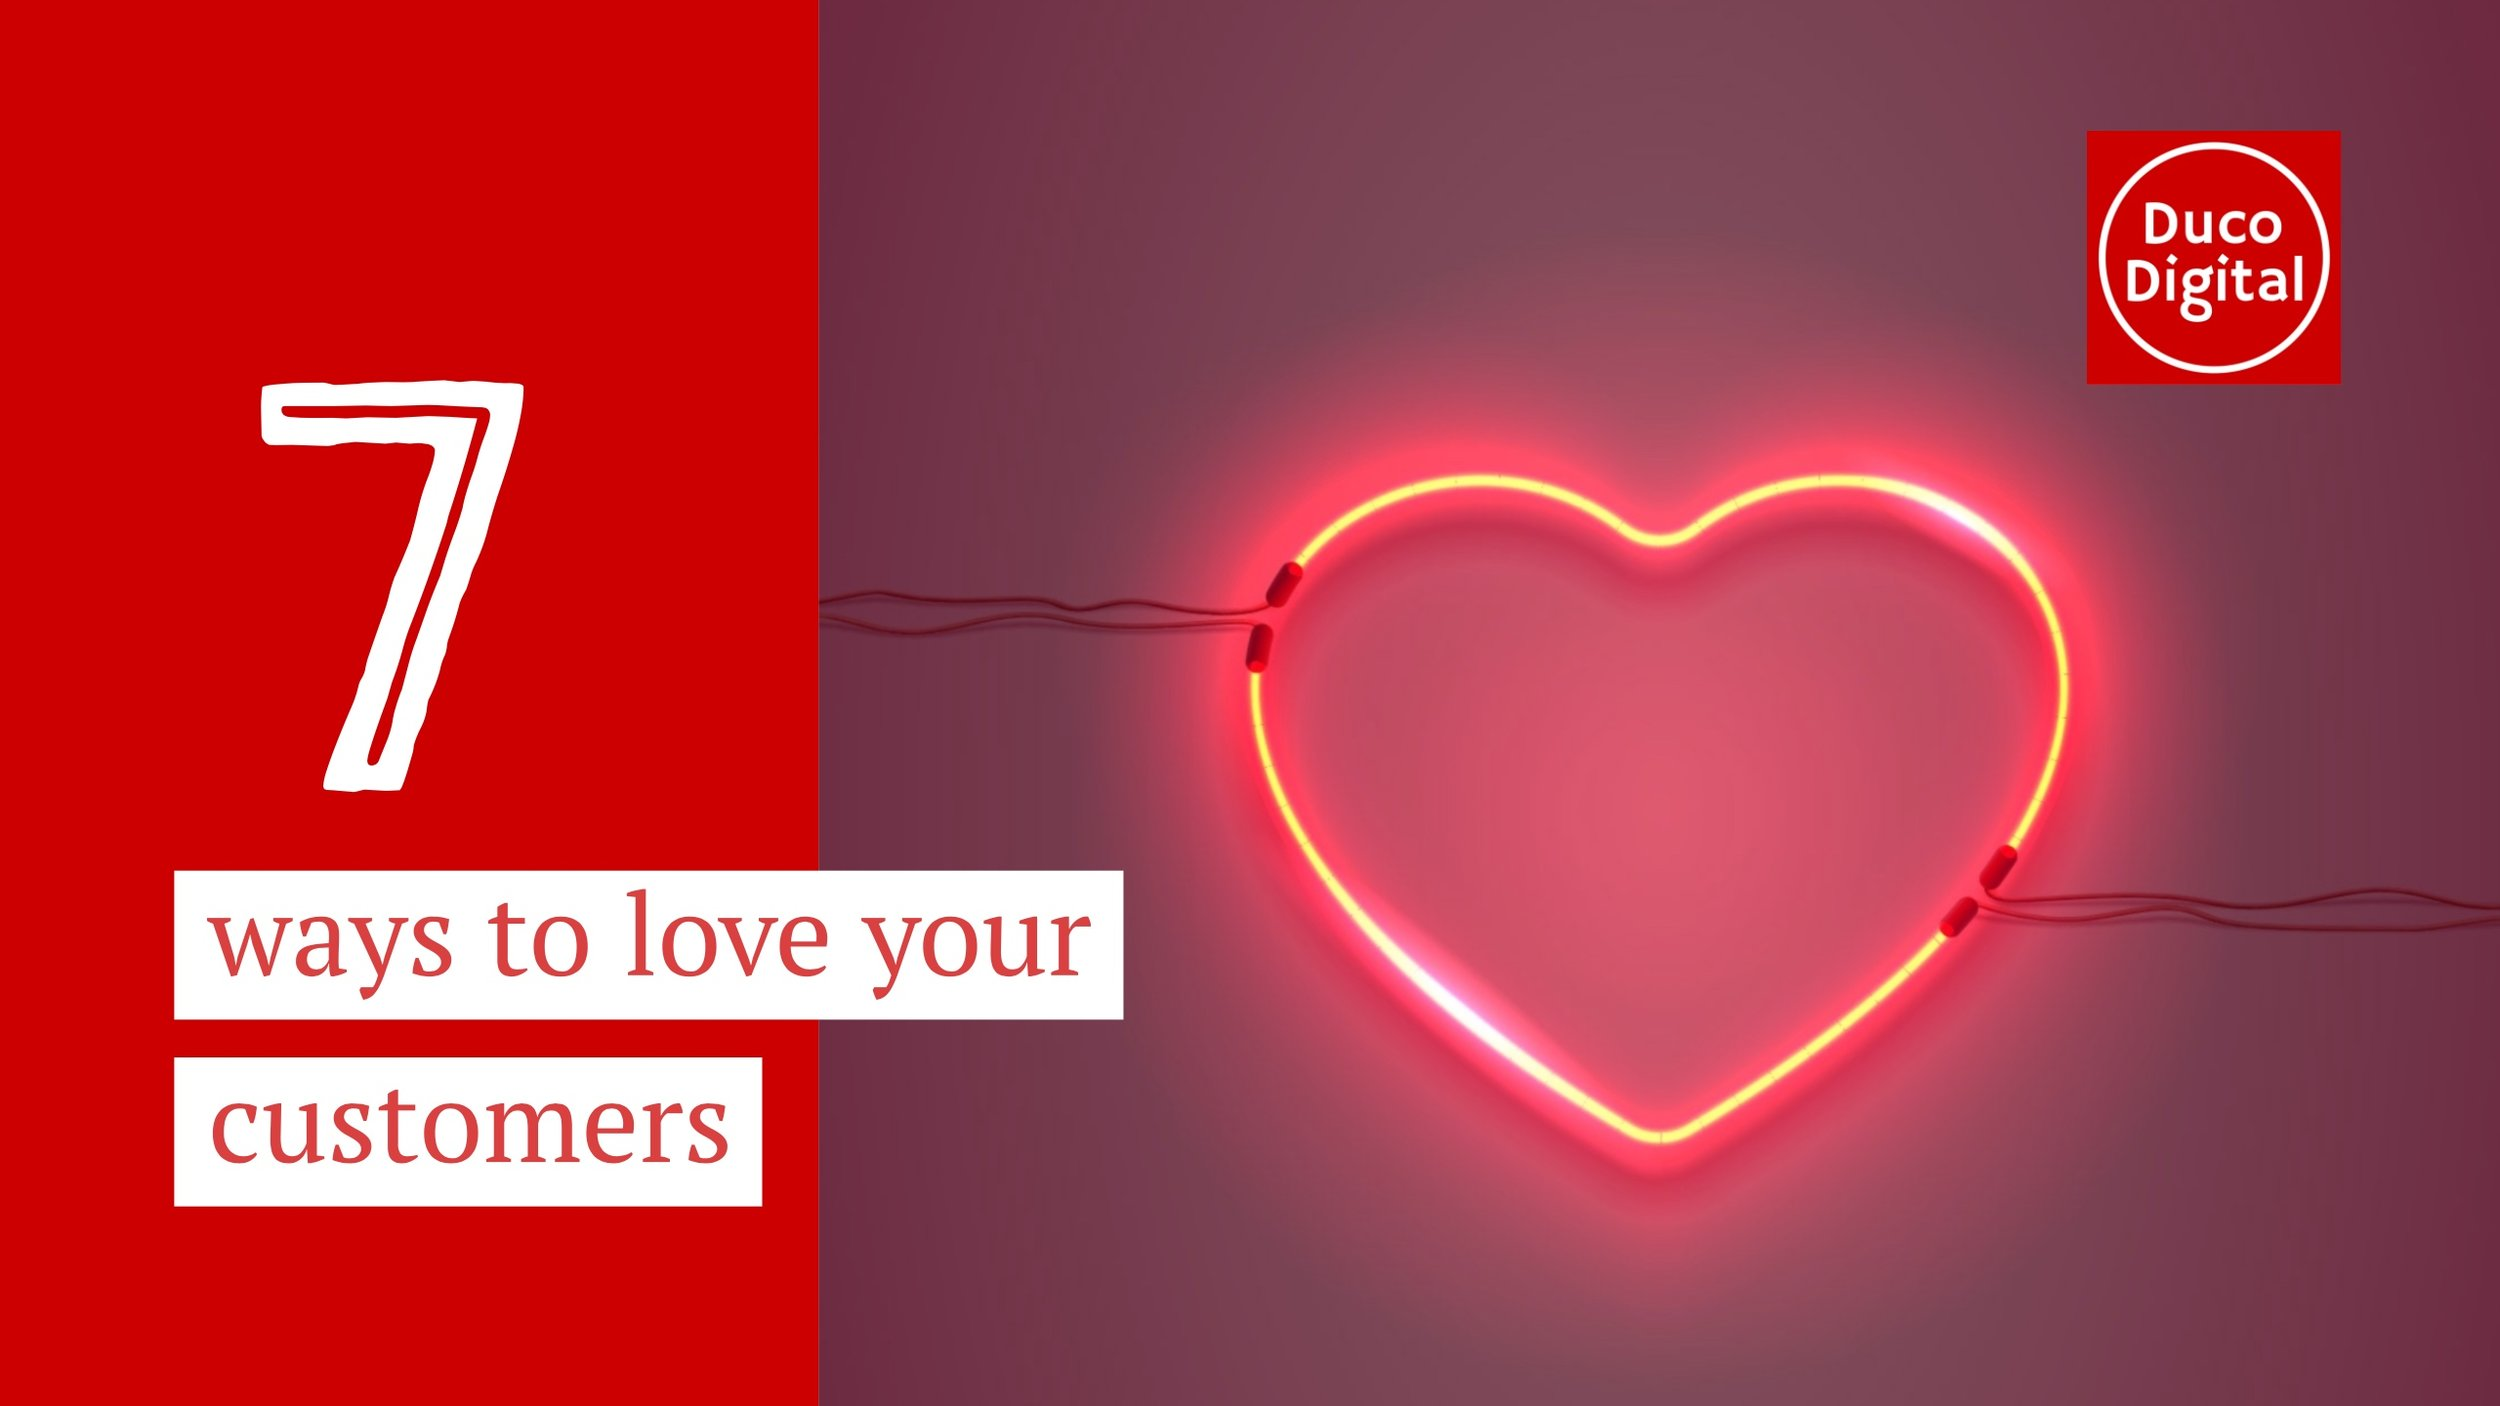 7 ways to love your customers